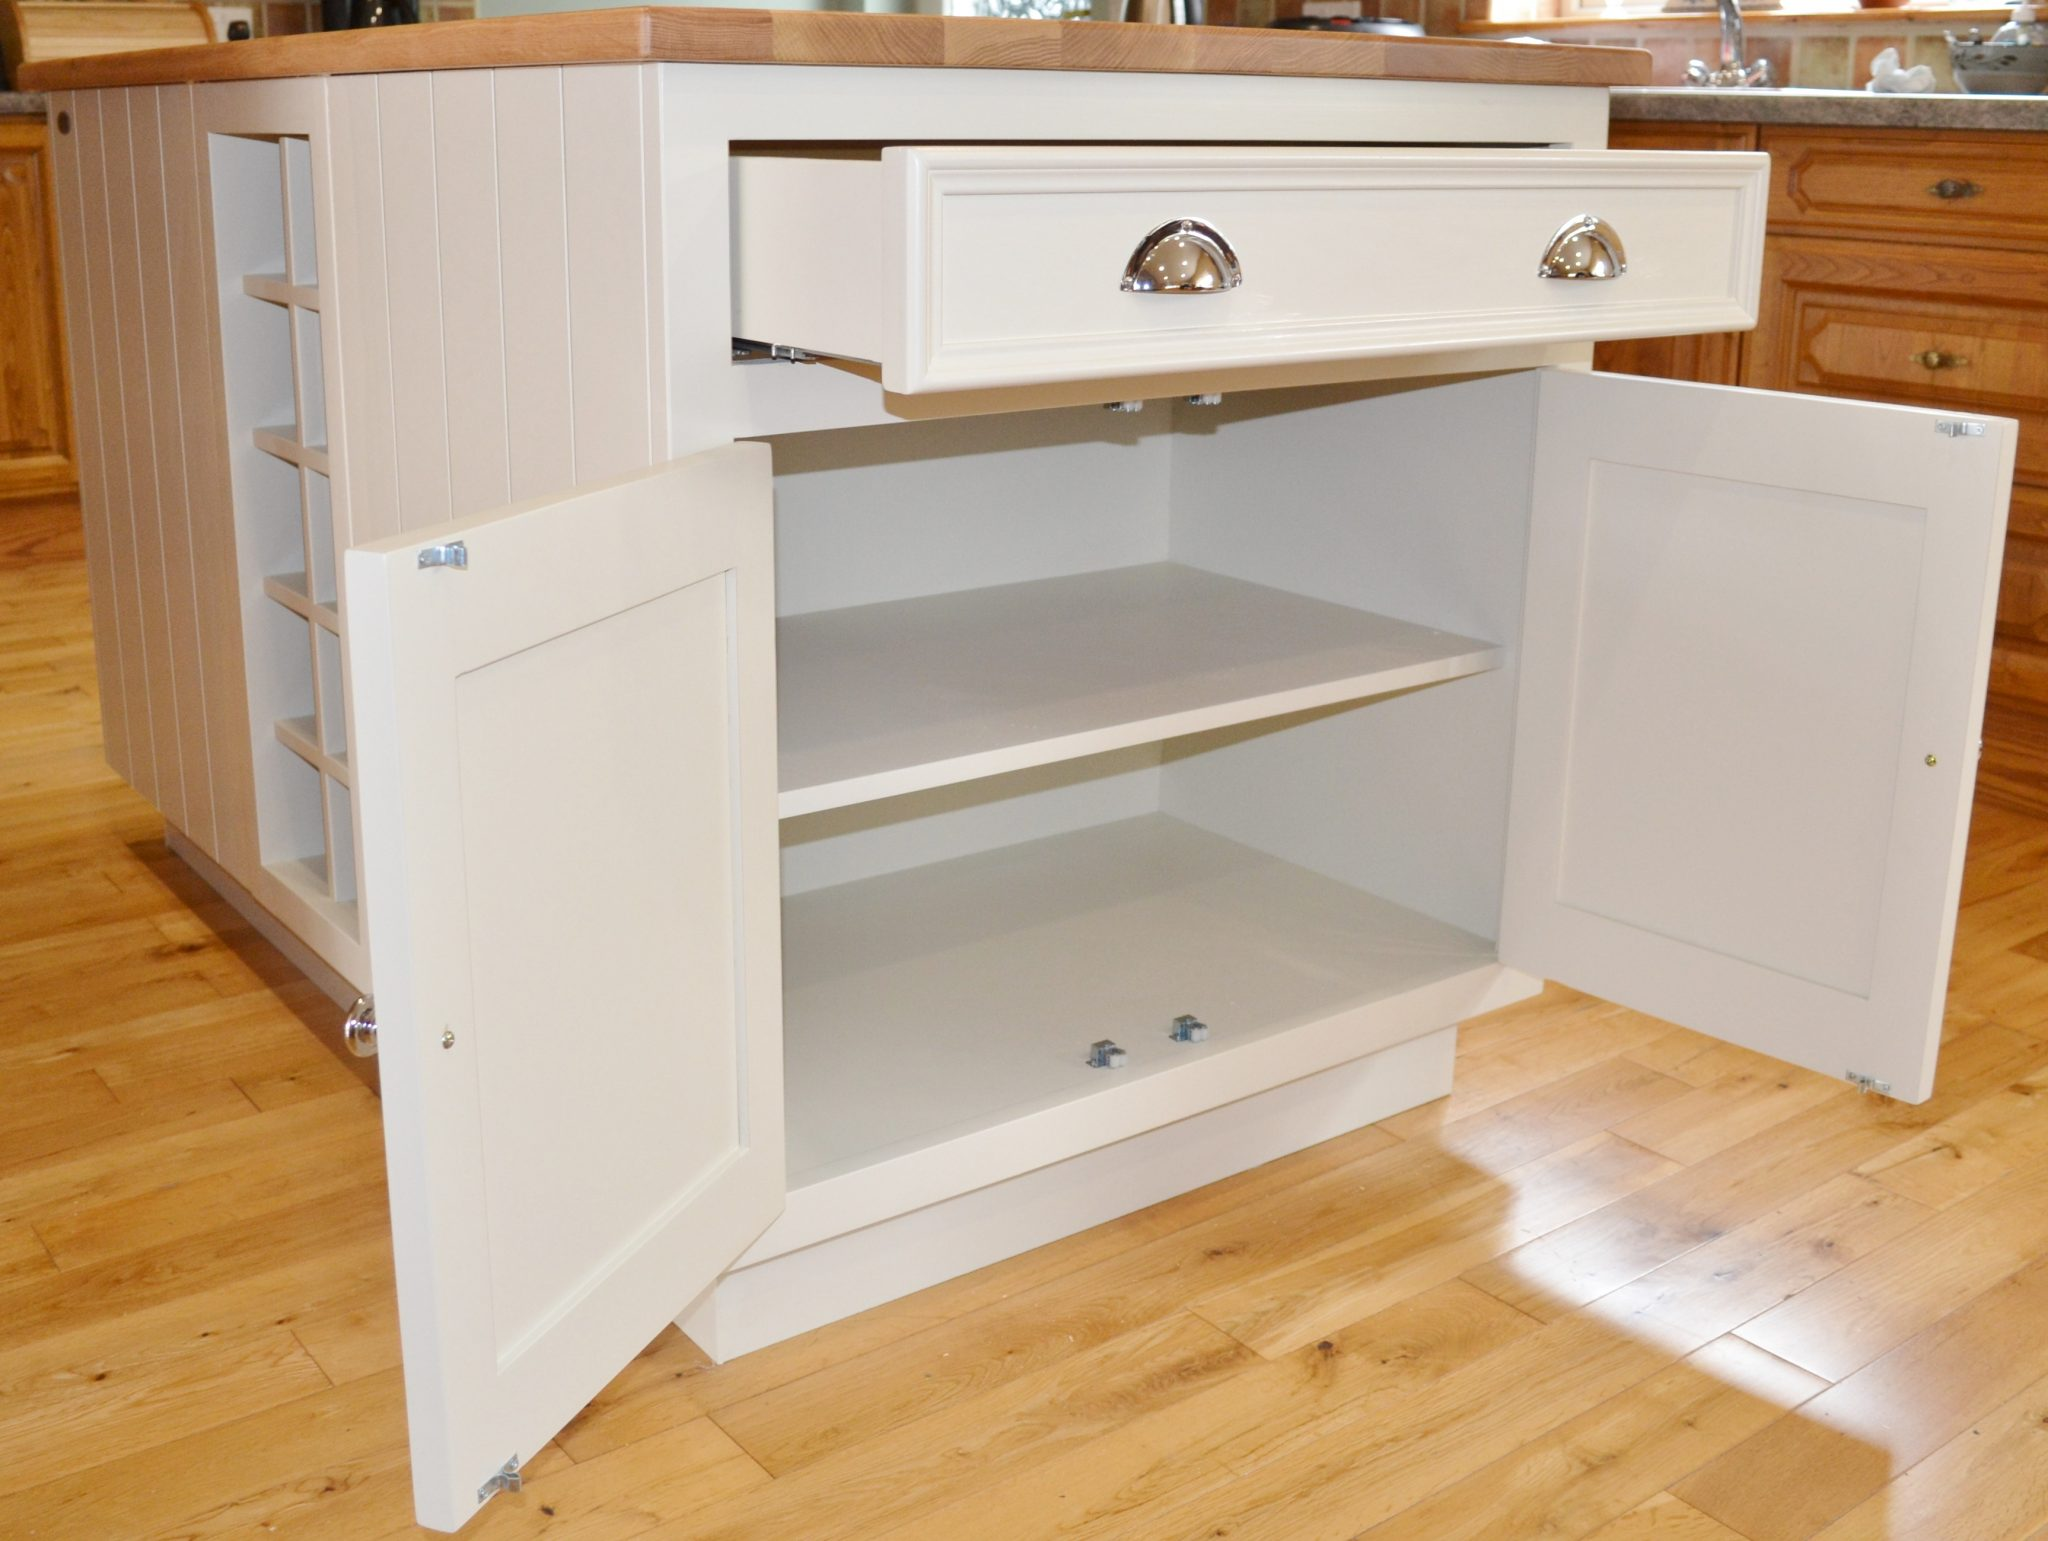 Deanery Bespoke Larder Furniture Kitchen Deanery Furniture